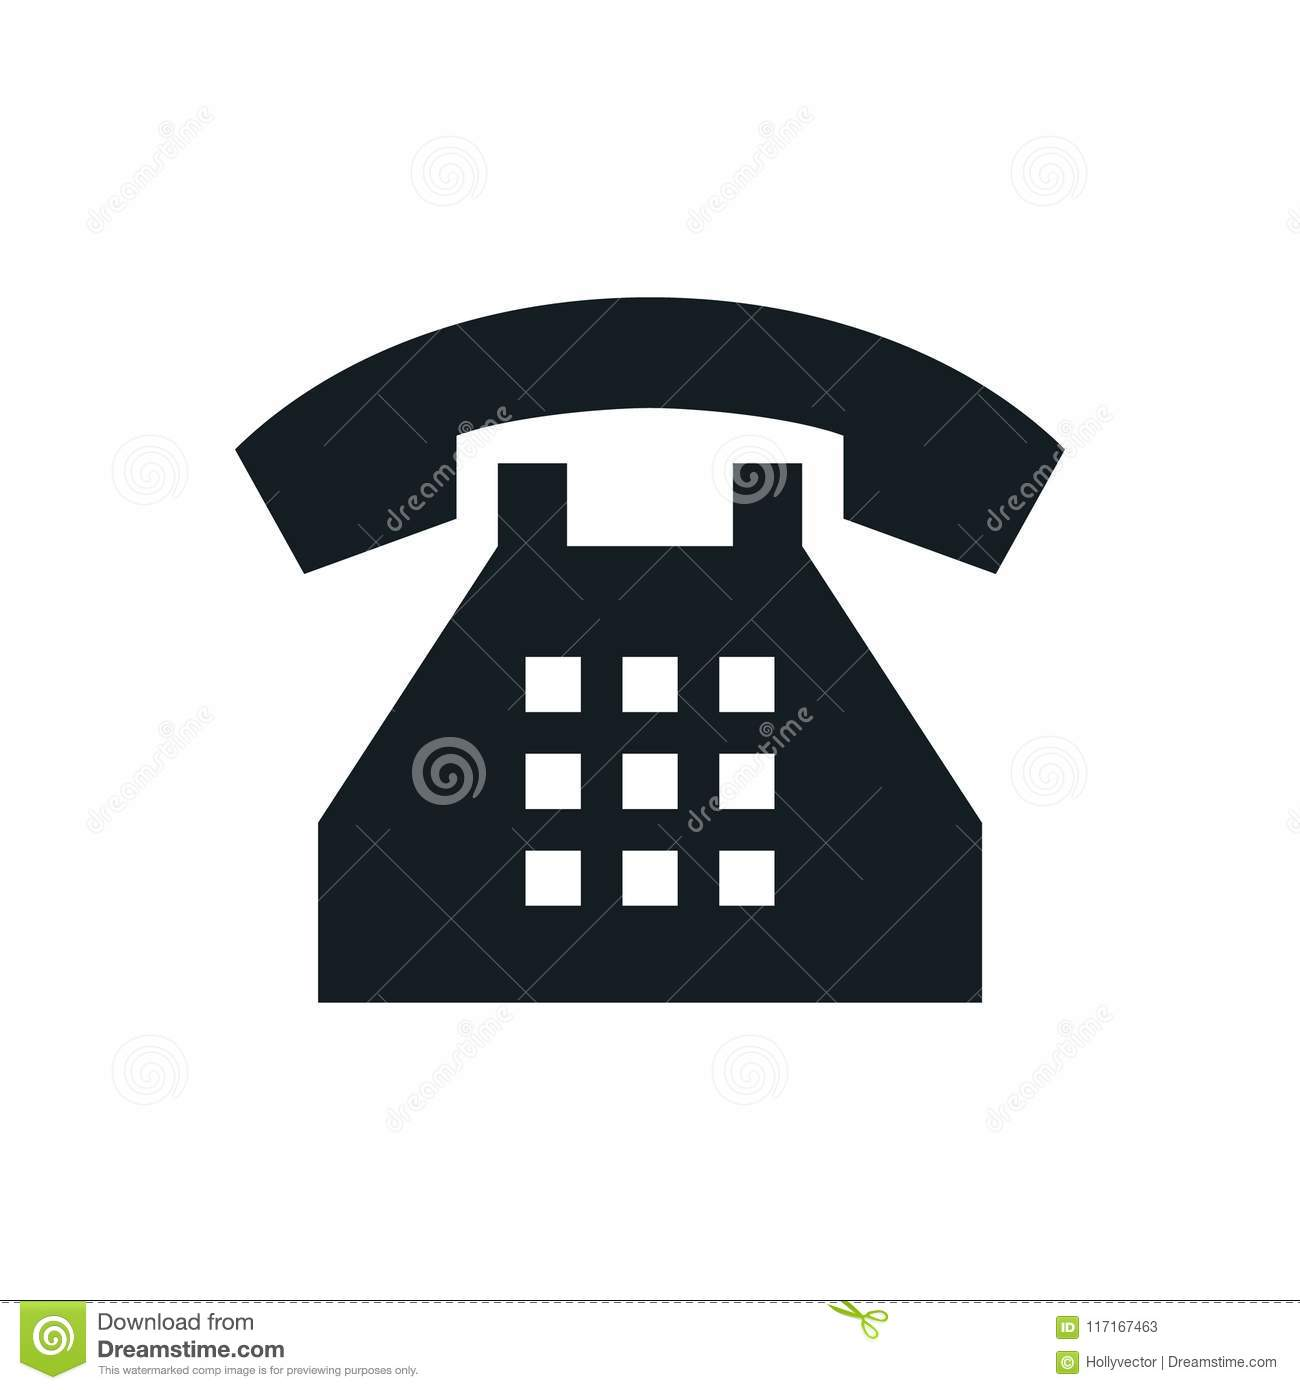 Phone Icons Telephone Symbol Stock Vector Illustration Of Flat